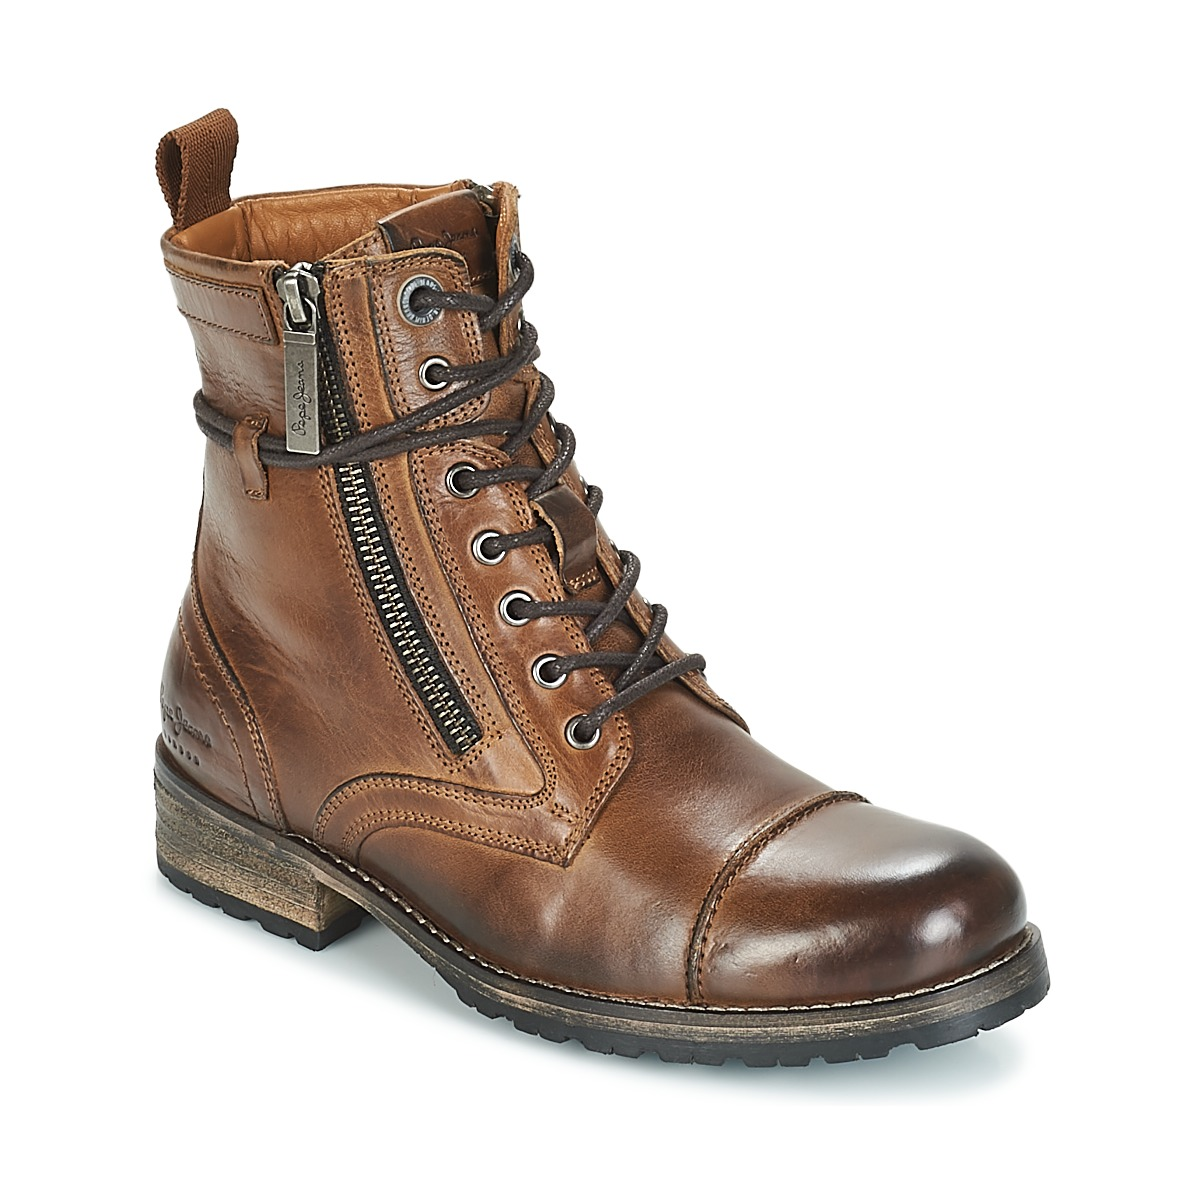 Pepe jeans Melting Boots Marron